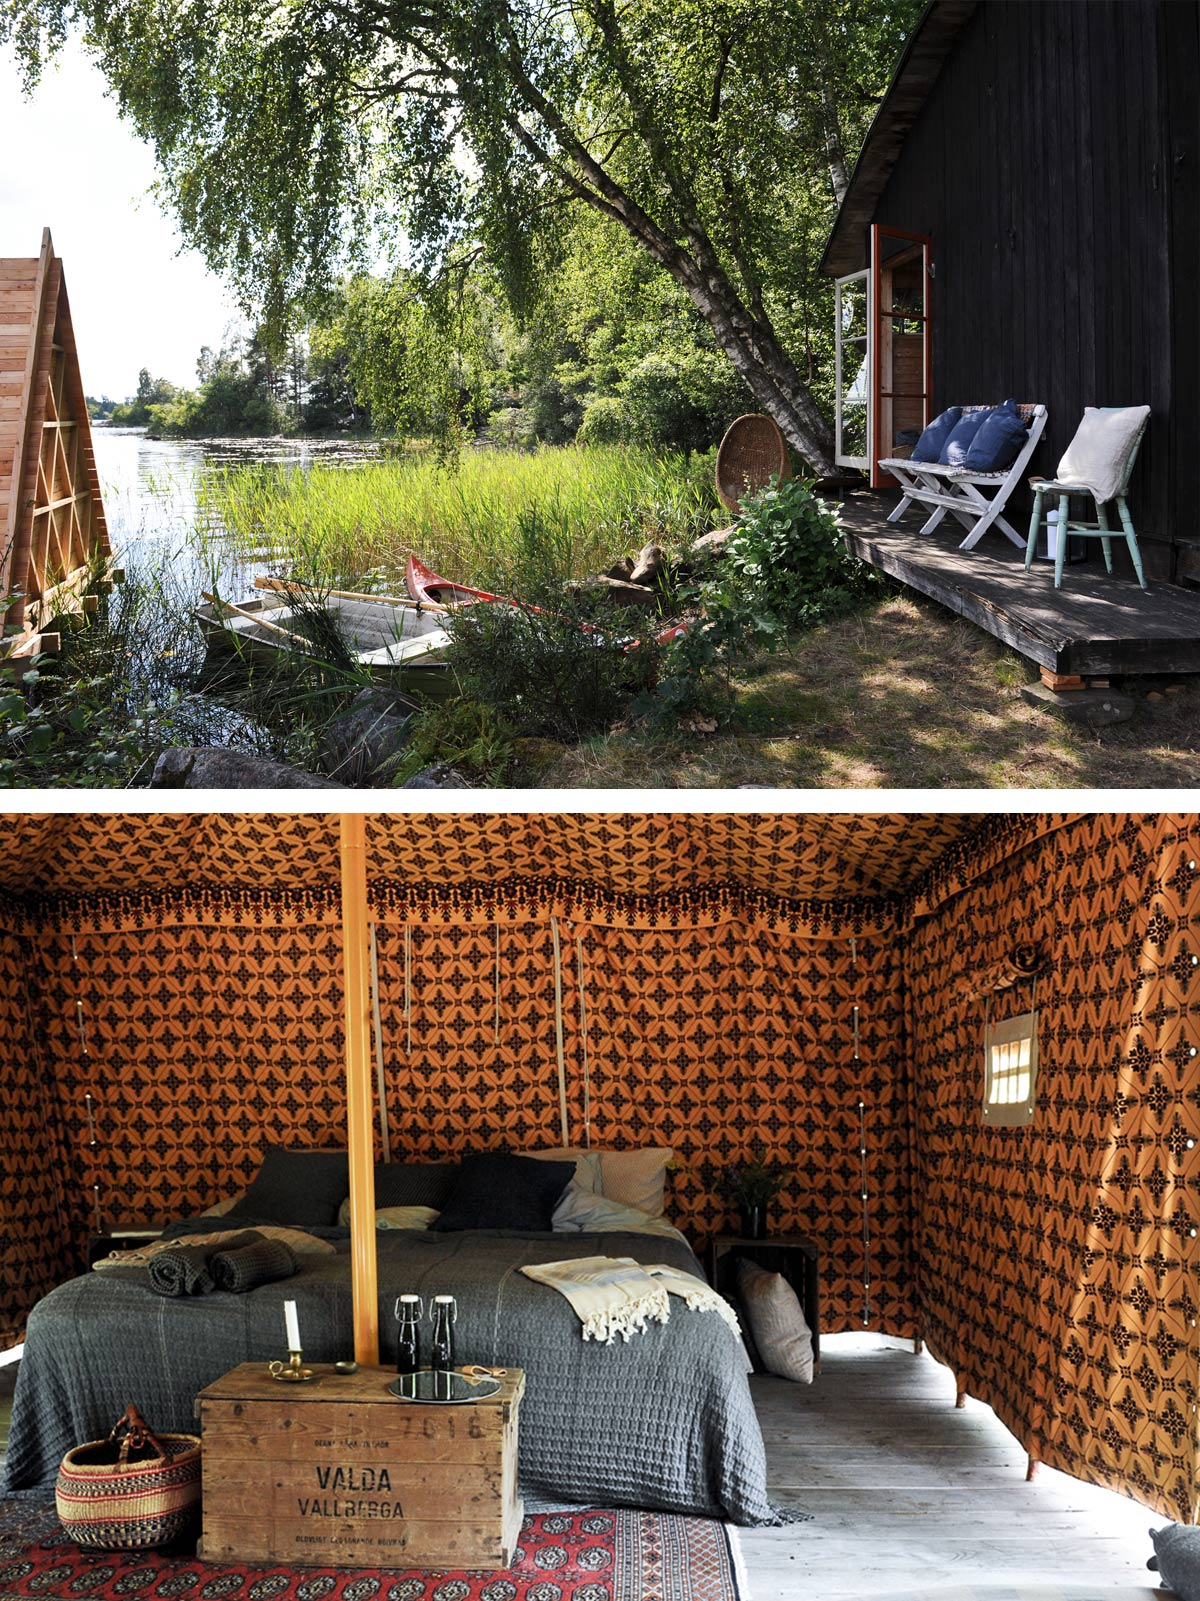 Luxurious camping at Stedsans in the Woods, Sweden.jpg